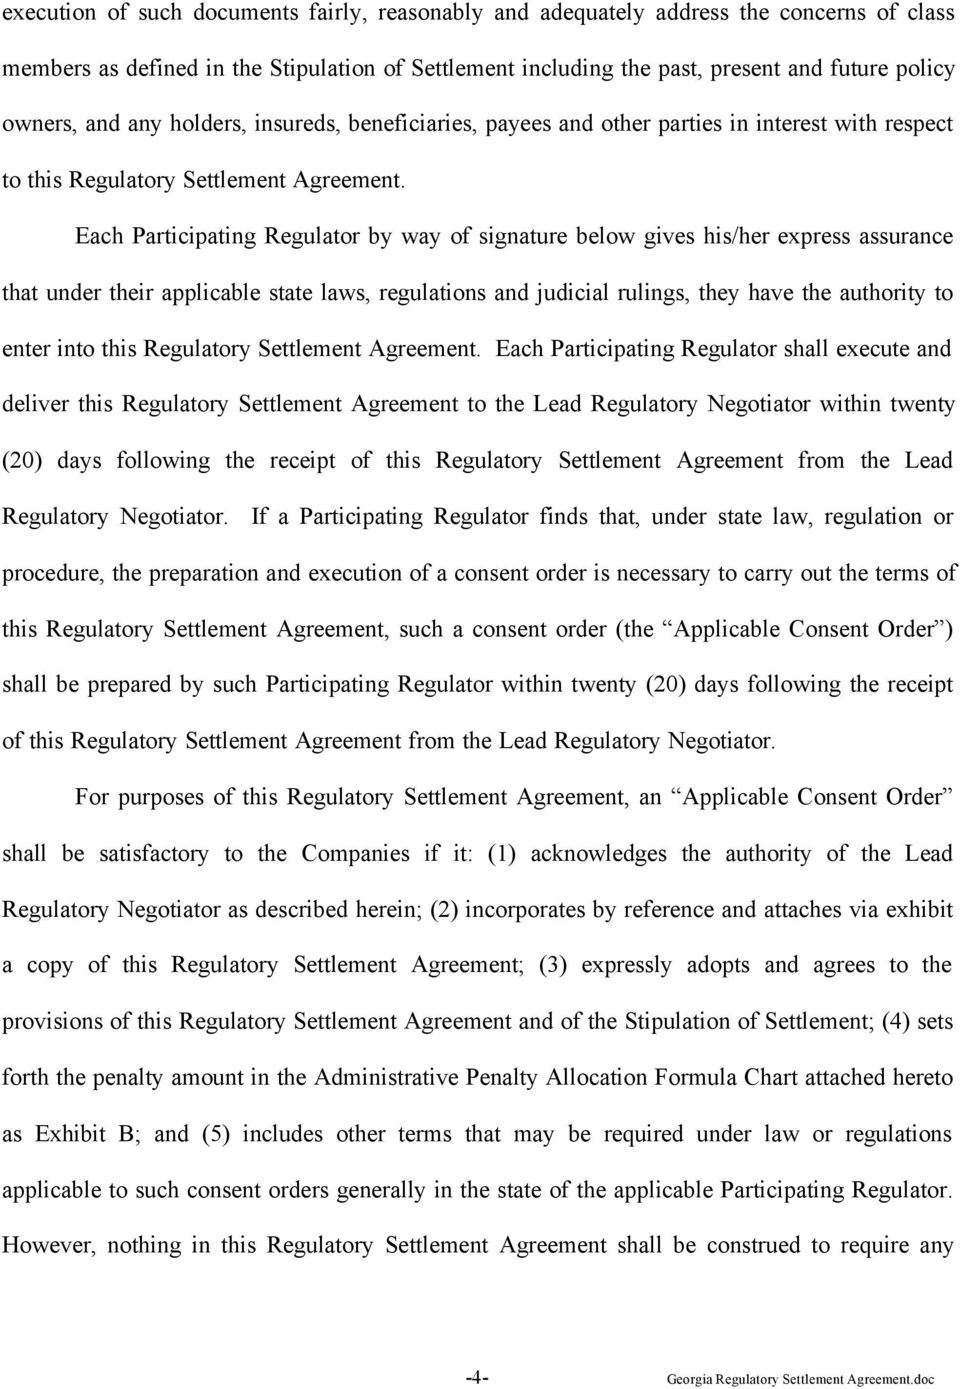 Each Participating Regulator by way of signature below gives his/her express assurance that under their applicable state laws, regulations and judicial rulings, they have the authority to enter into